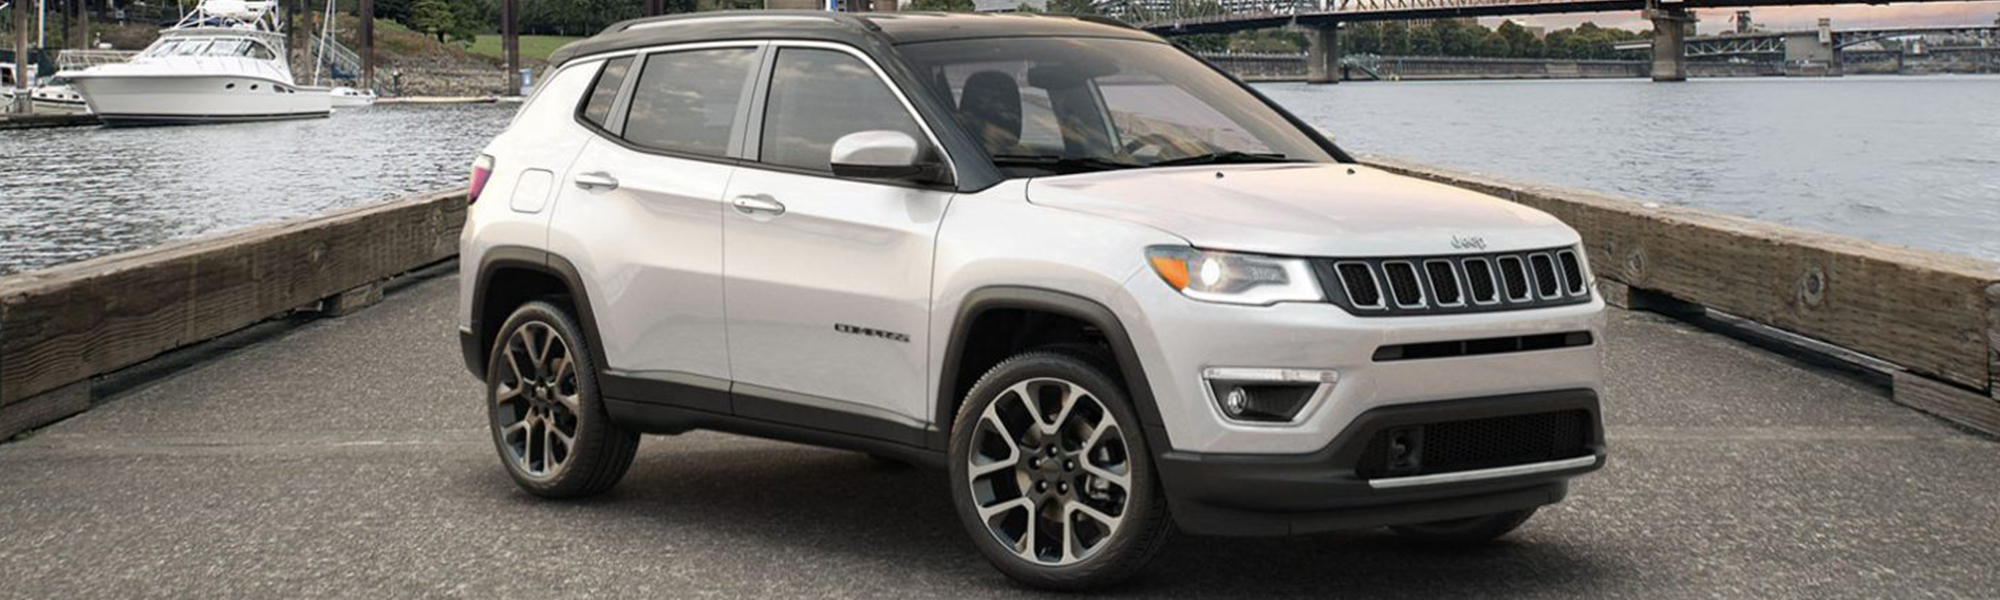 2020 Jeep Compass for sale